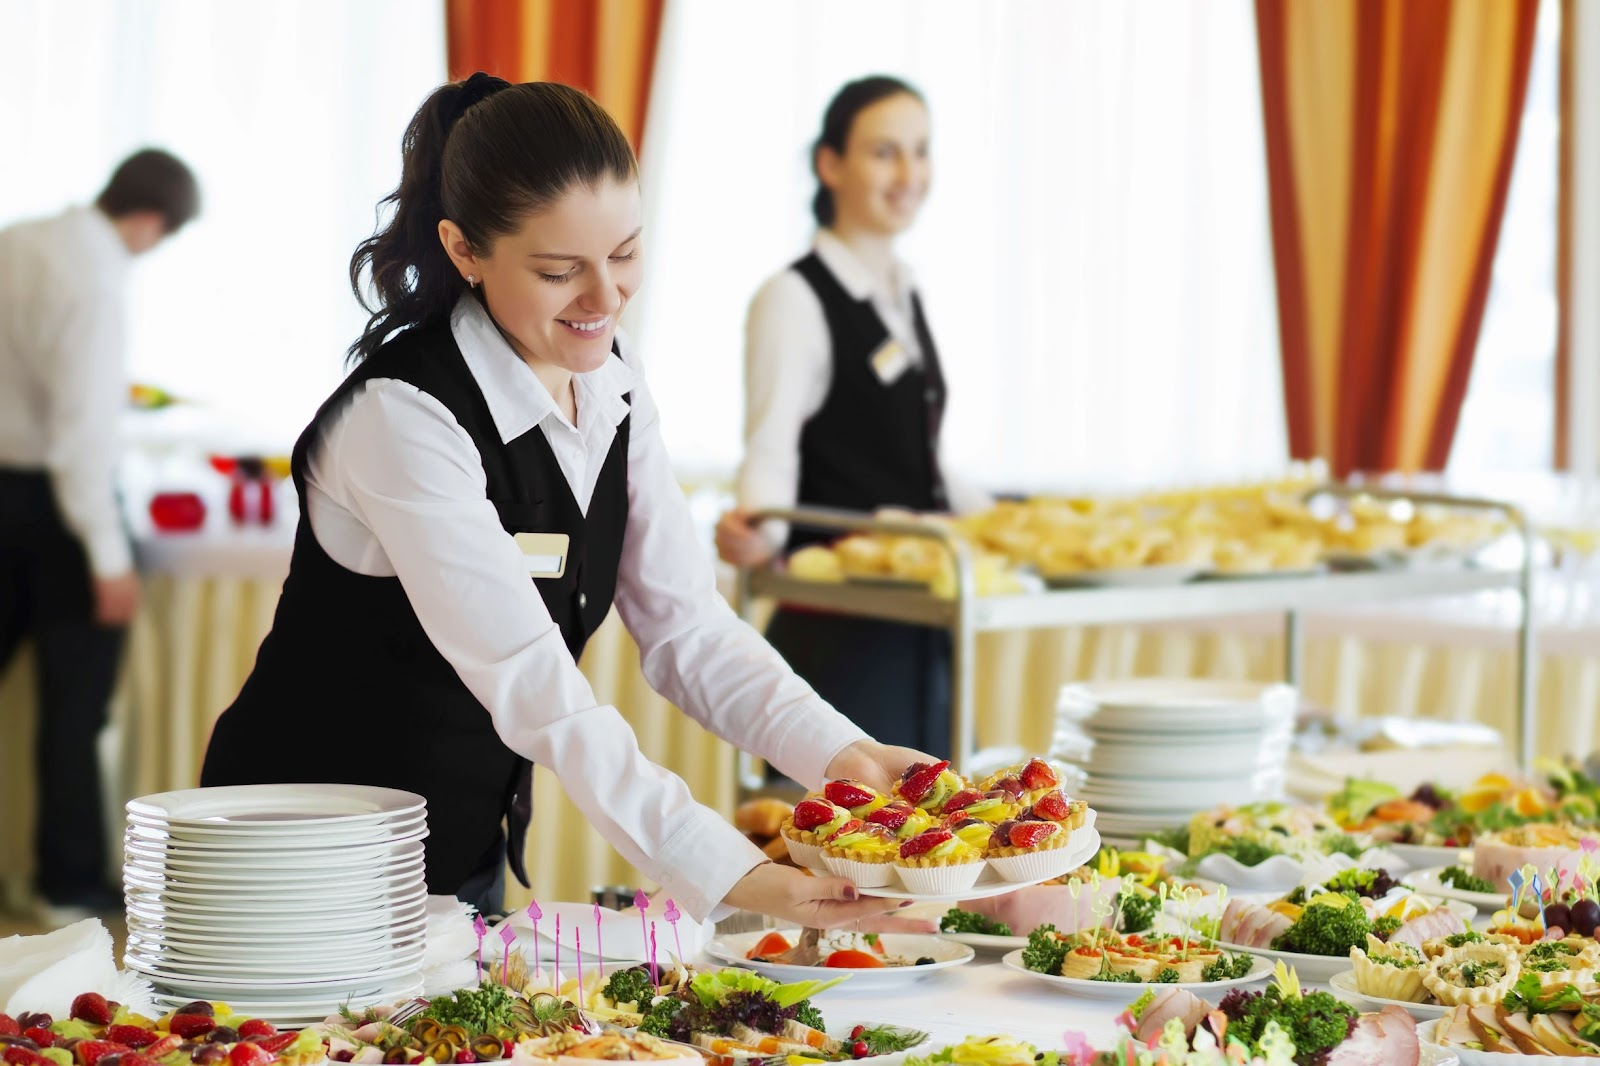 Hotel catering staff